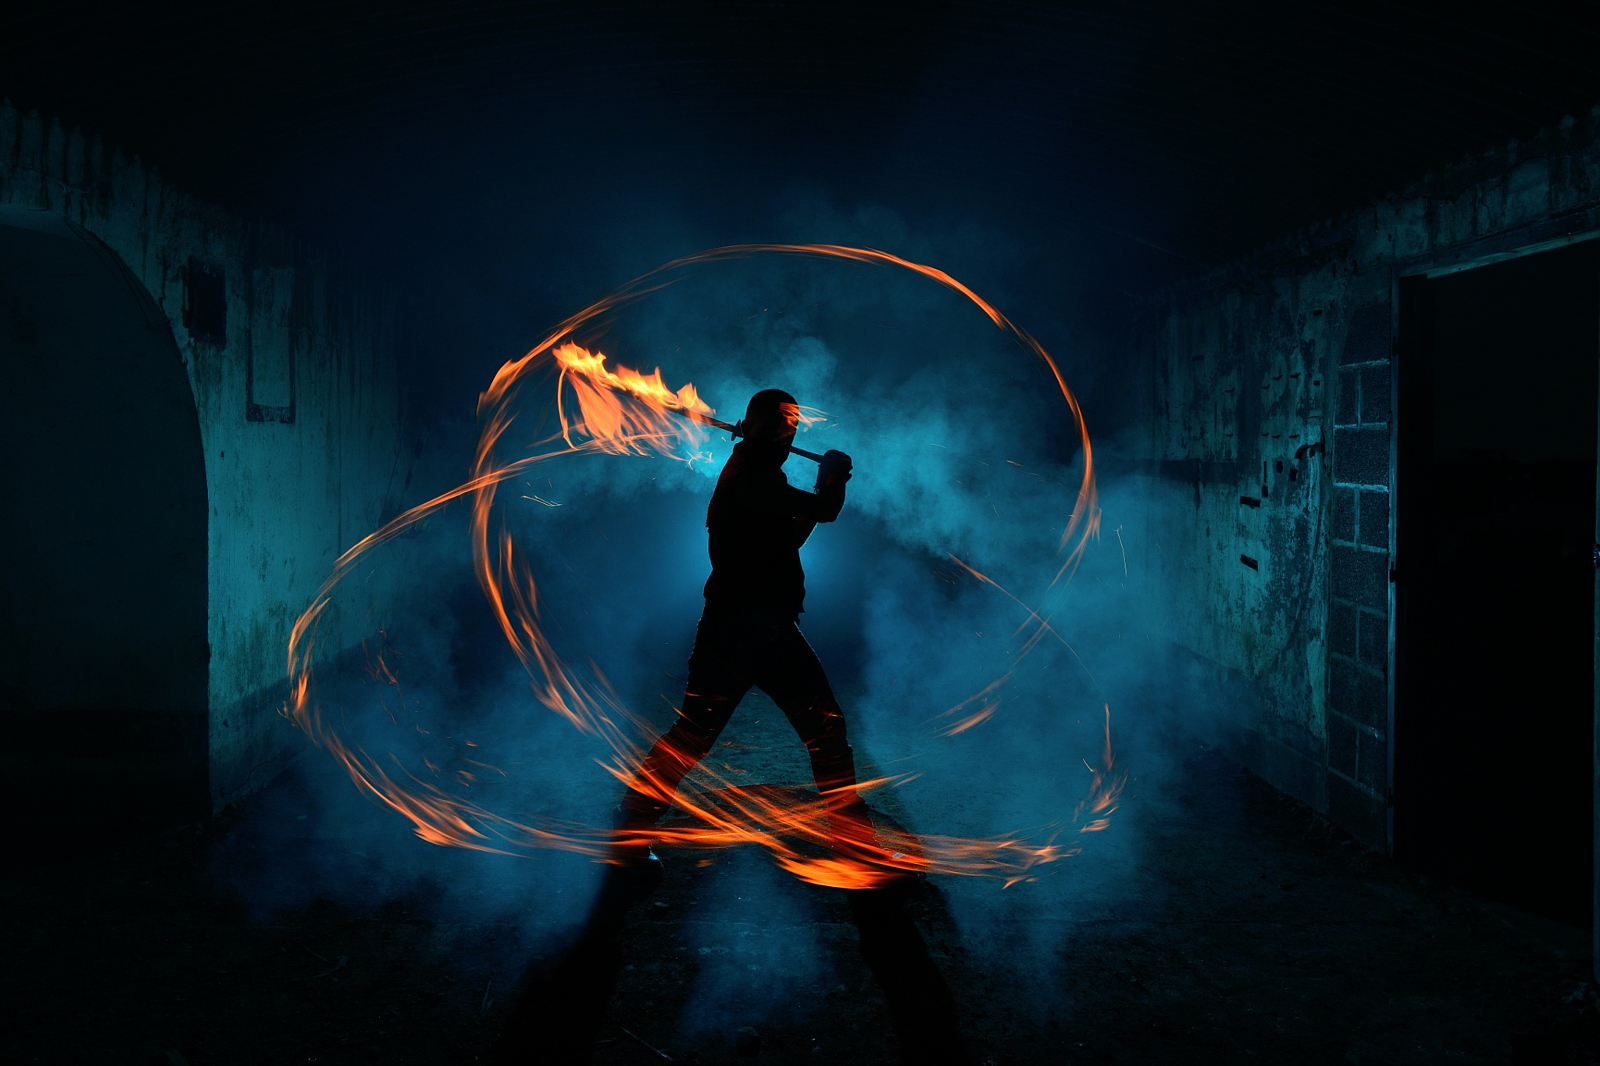 13 Epic Light Painting Shots on 500px